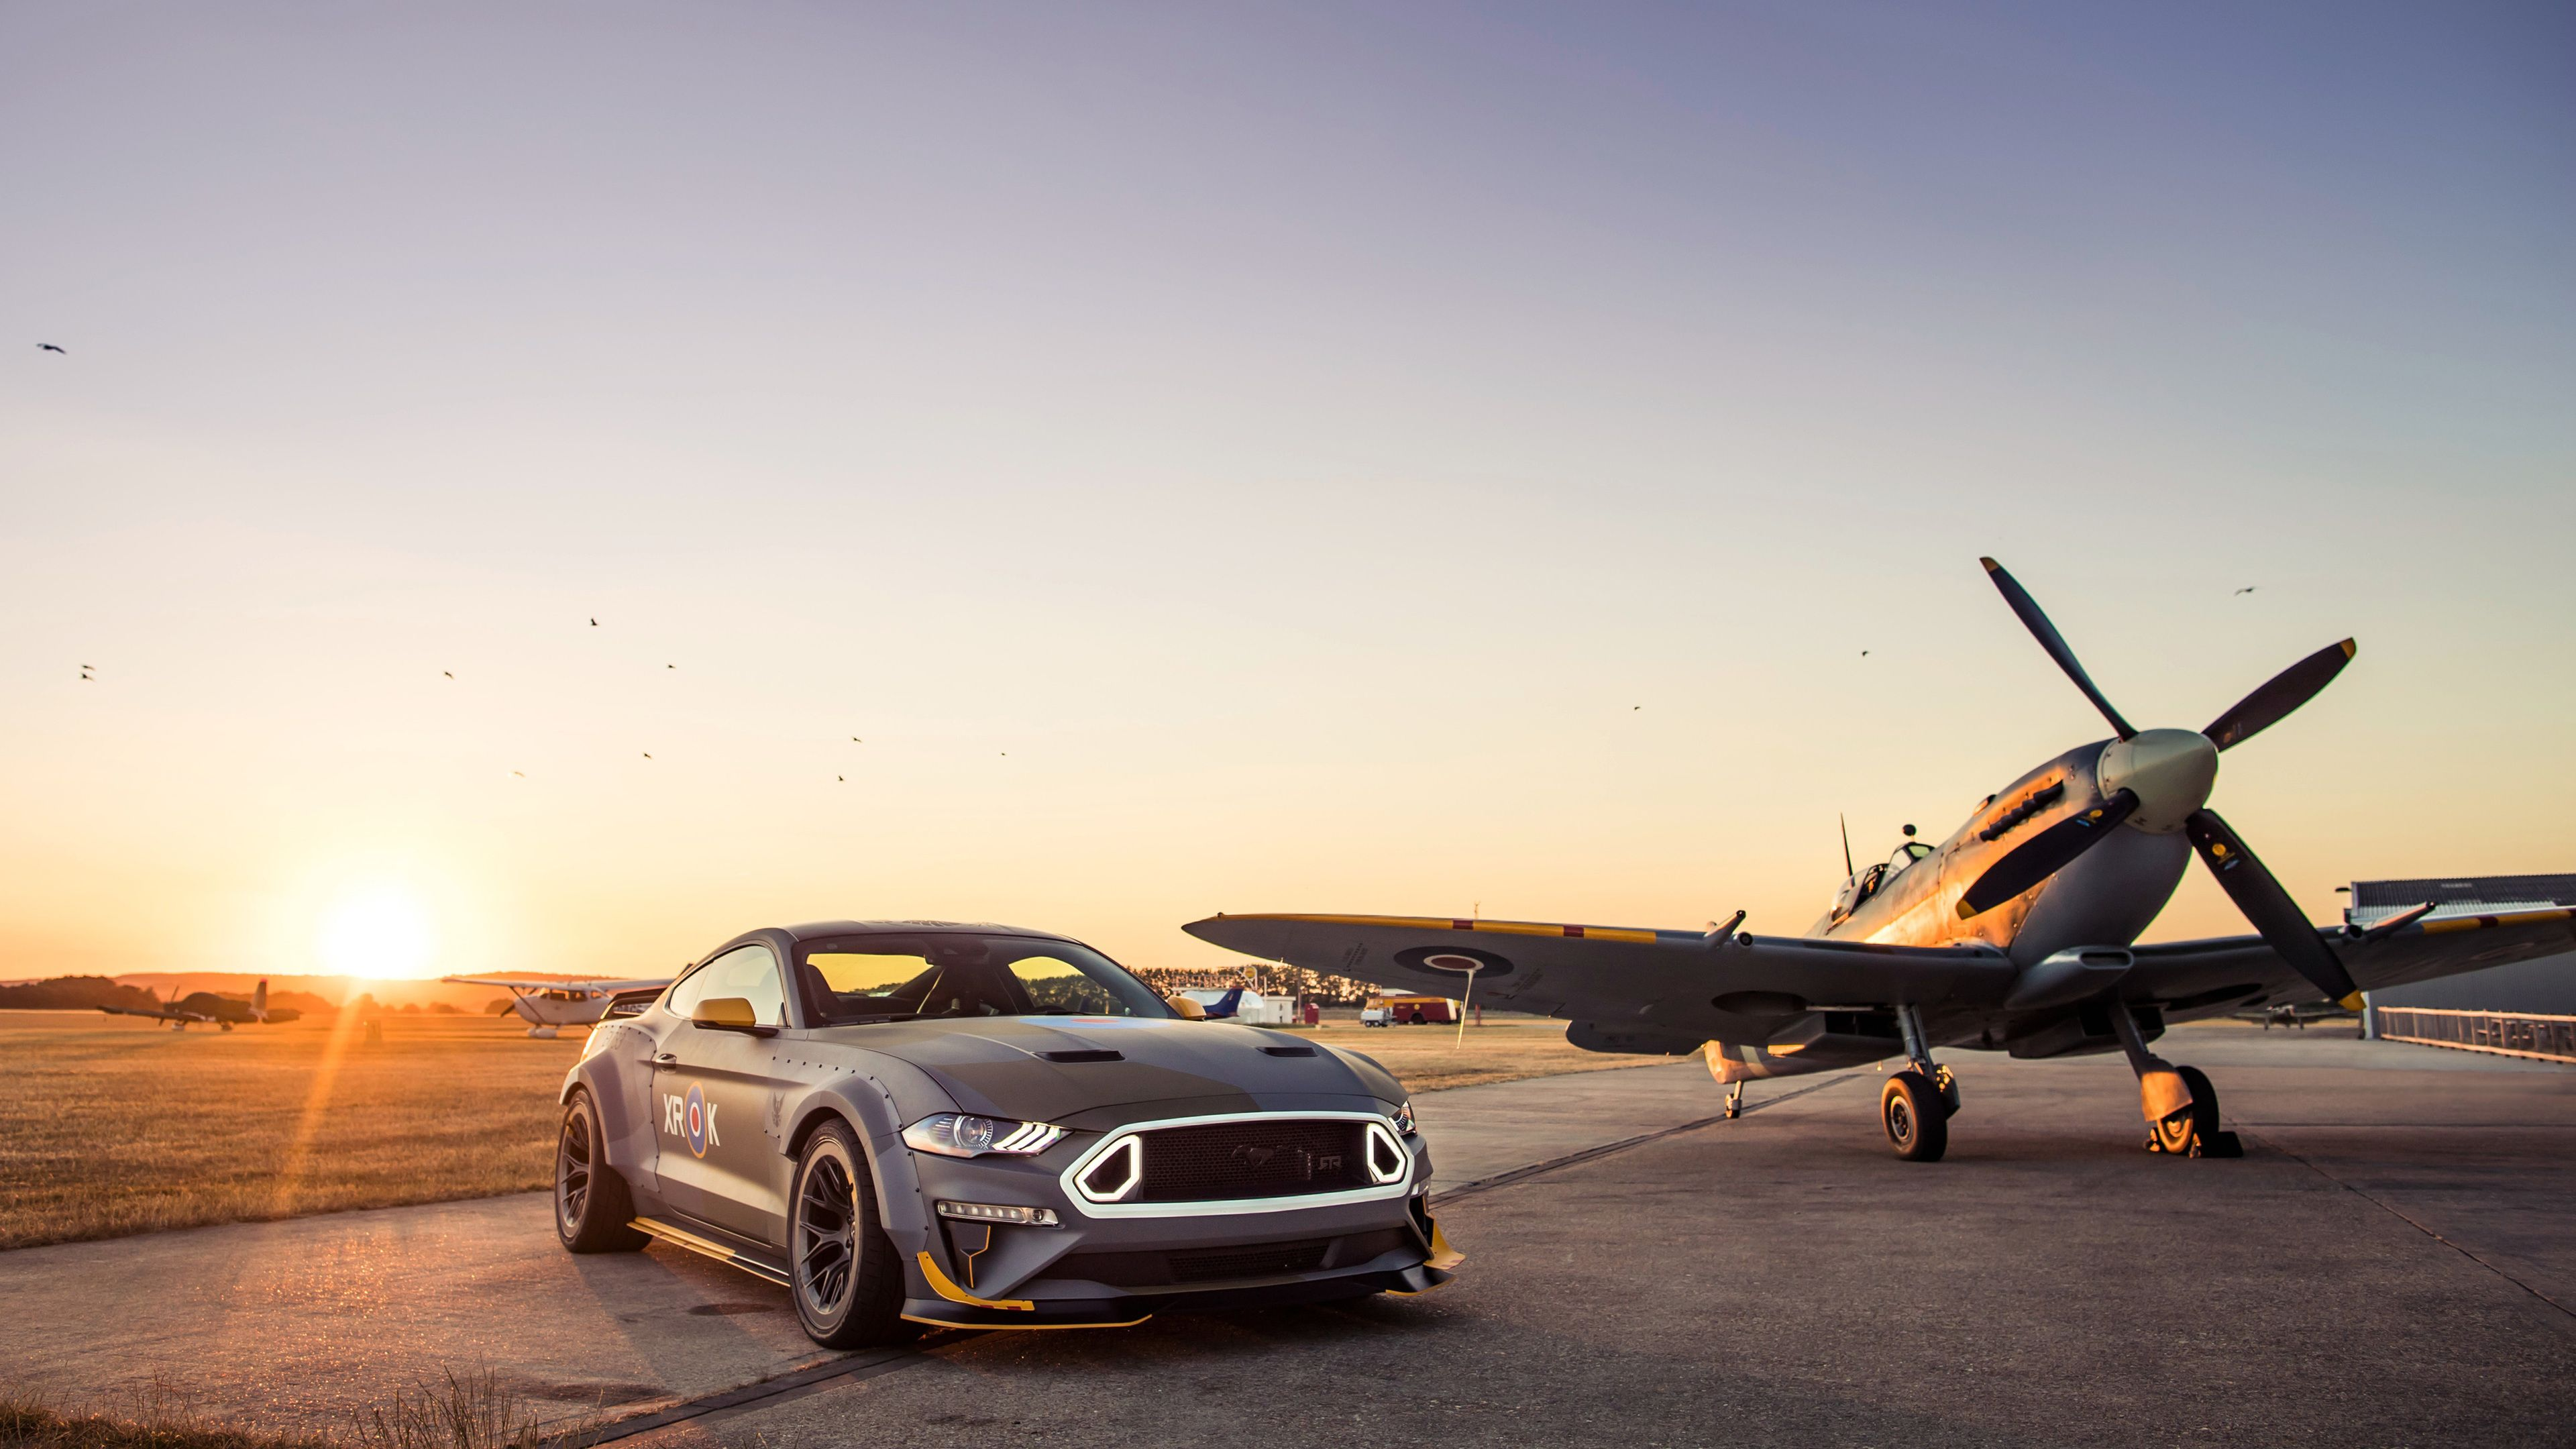 Ford Eagle Squadron Mustang Gt Mustang Wallpapers Hd Wallpapers Ford Mustang Wallpapers Cars Wallpapers 4k Wallpap Mustang Gt Mustang Ford Mustang Fastback